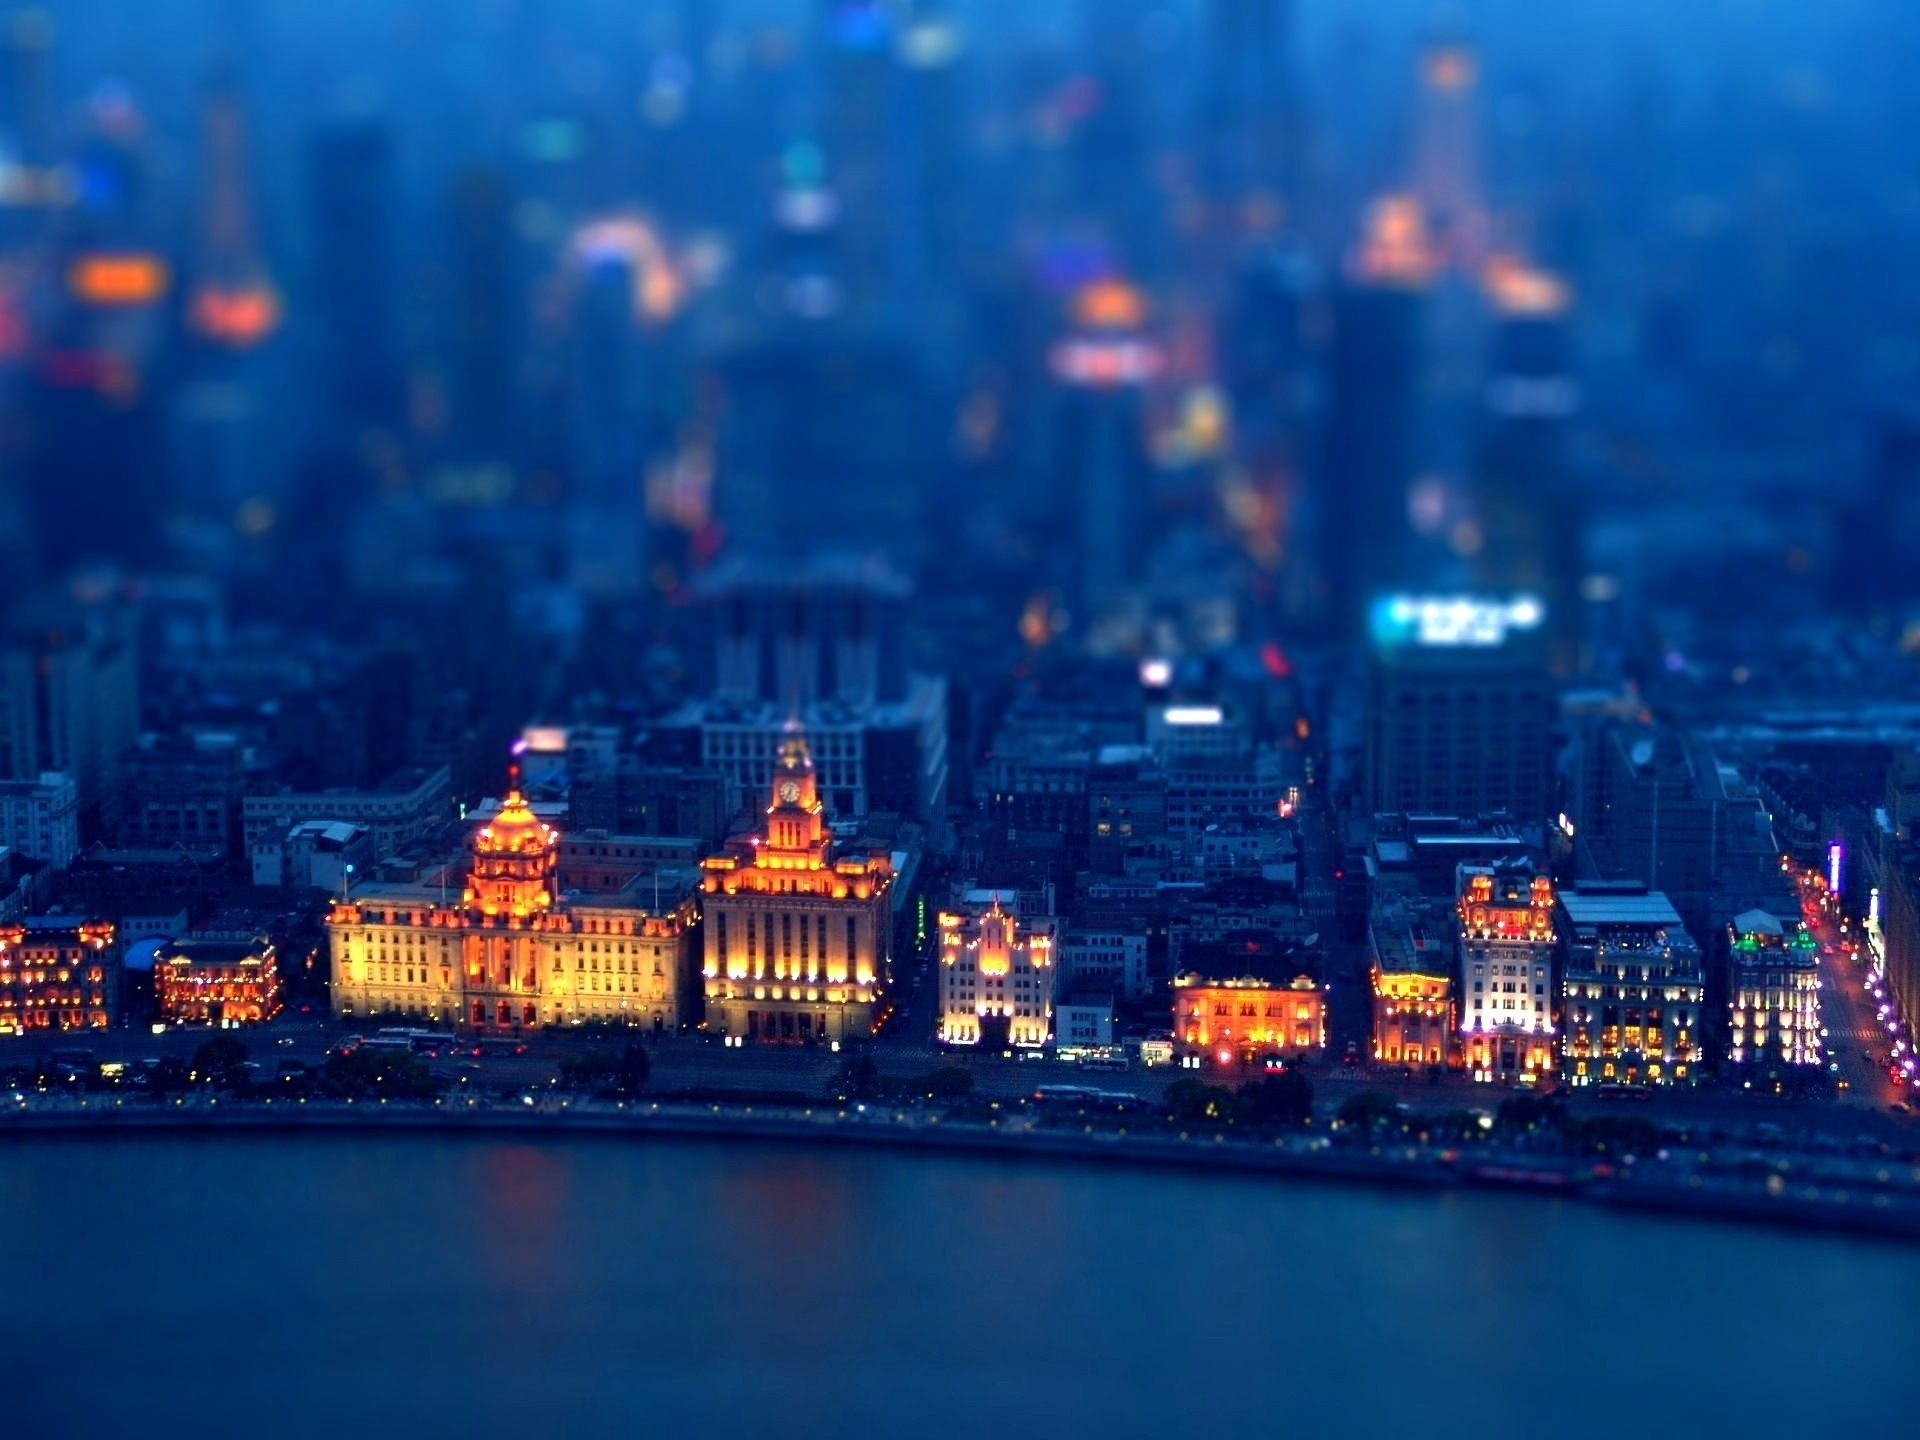 Free HD Tilt Shift Wallpaper For You